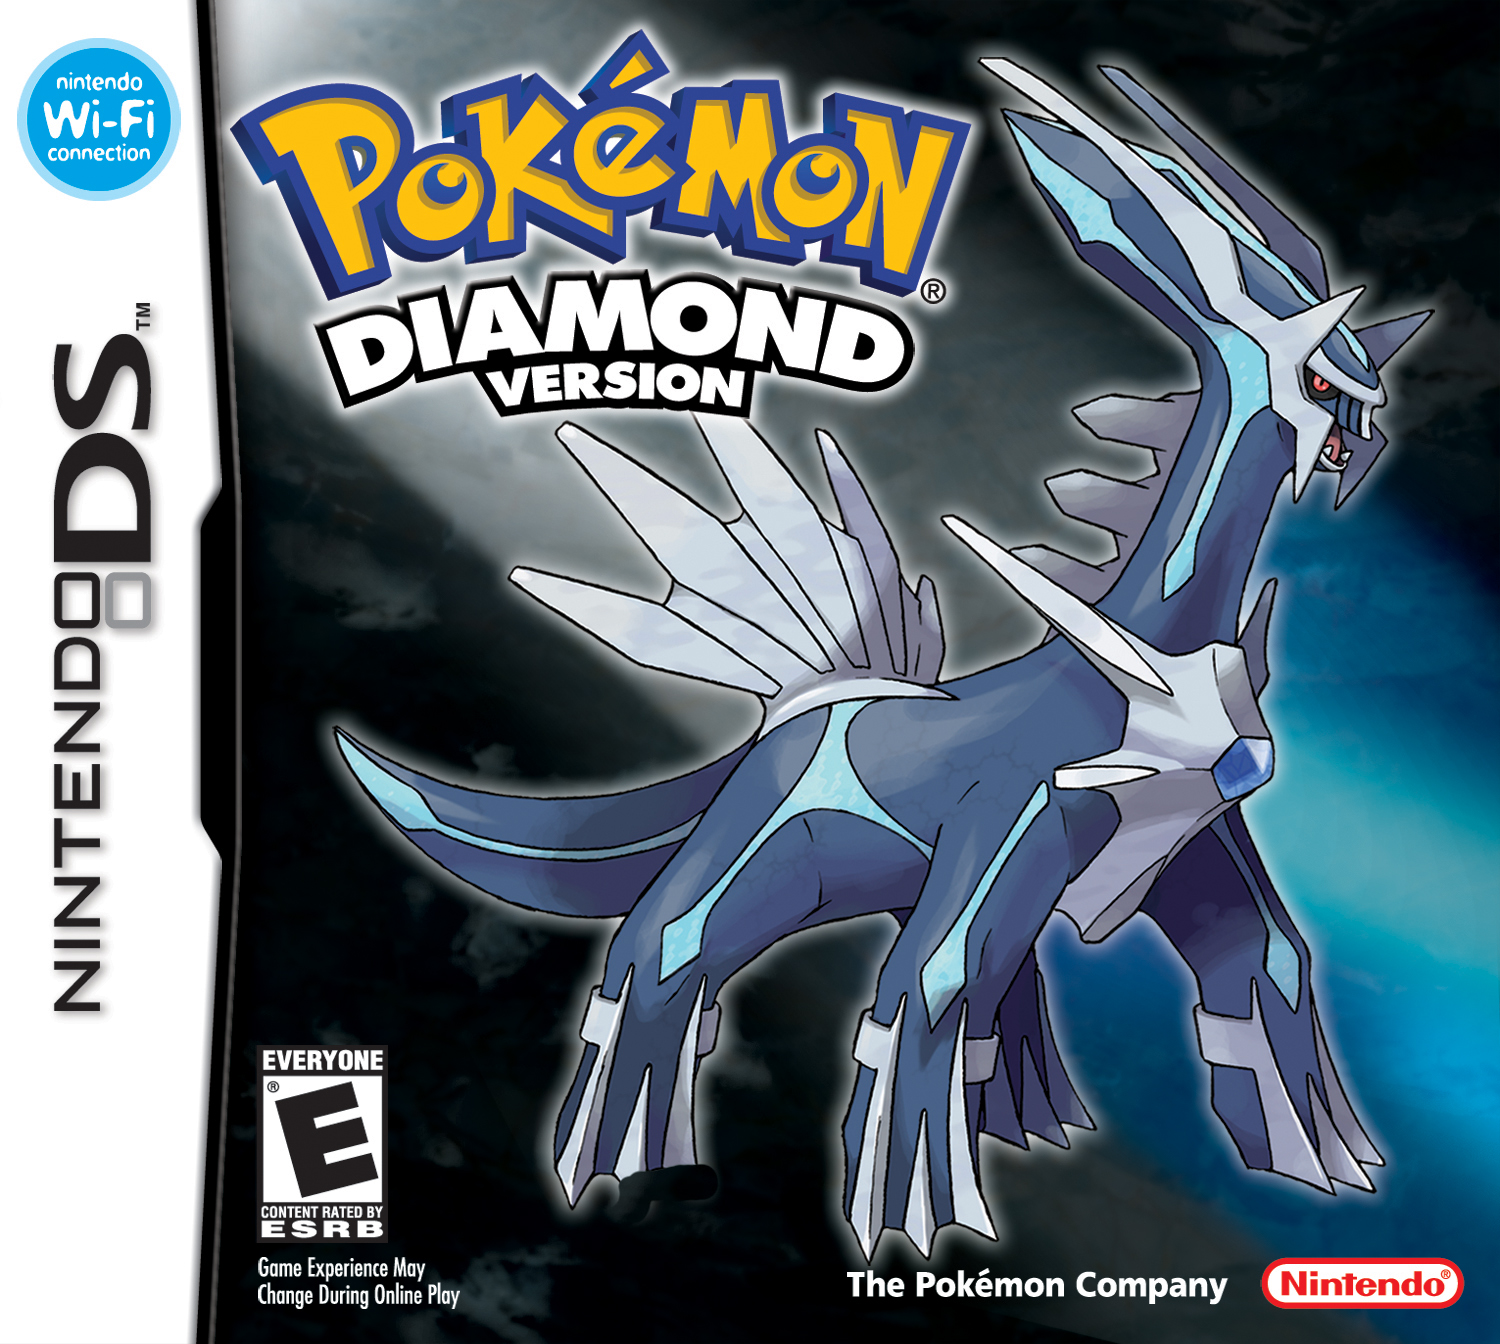 Pokémon Diamond and Pearl Version